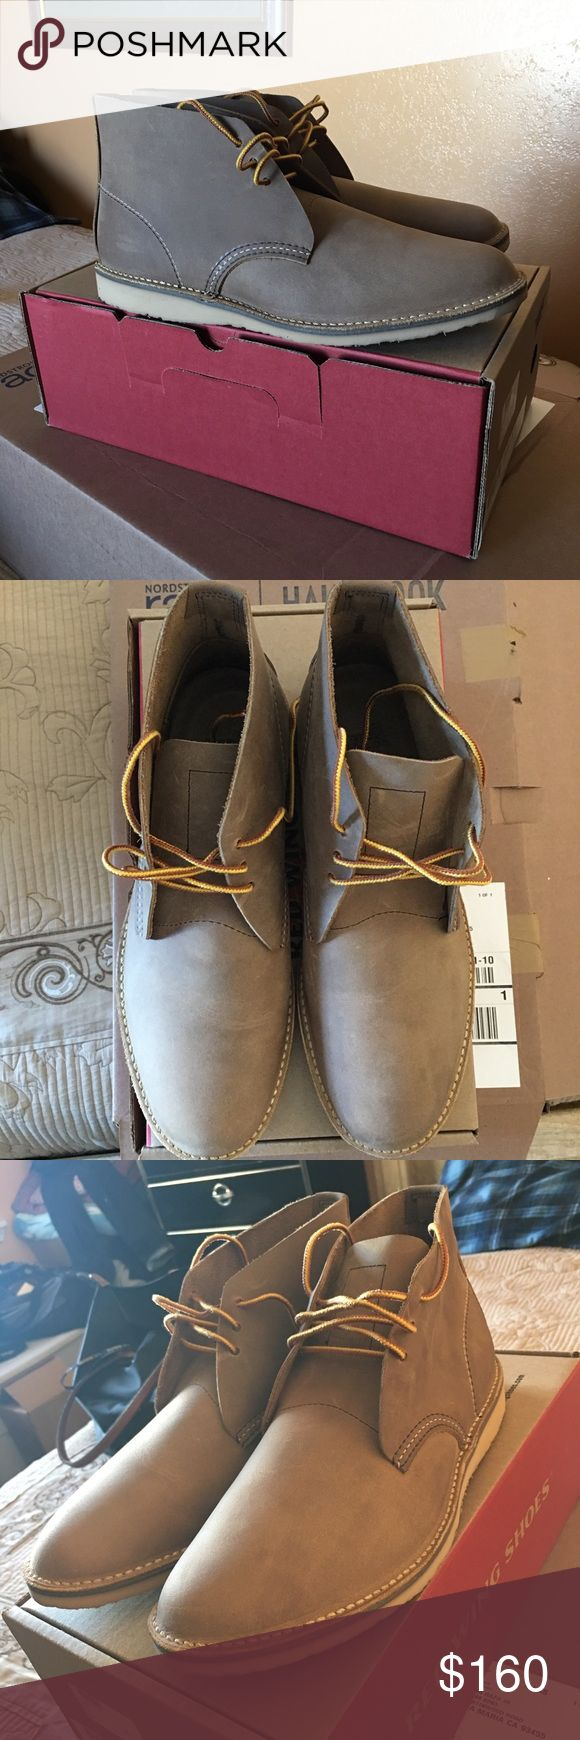 """Red Wing Weekender Chukka Boot (Sand) NEW Sizing: True to size. - Round toe - Topstitching - Lace-up - Welt midsole trim - Removable insole - Approx. 5.25"""" shaft height - Made in USA Red Wing Shoes Shoes Chukka Boots"""